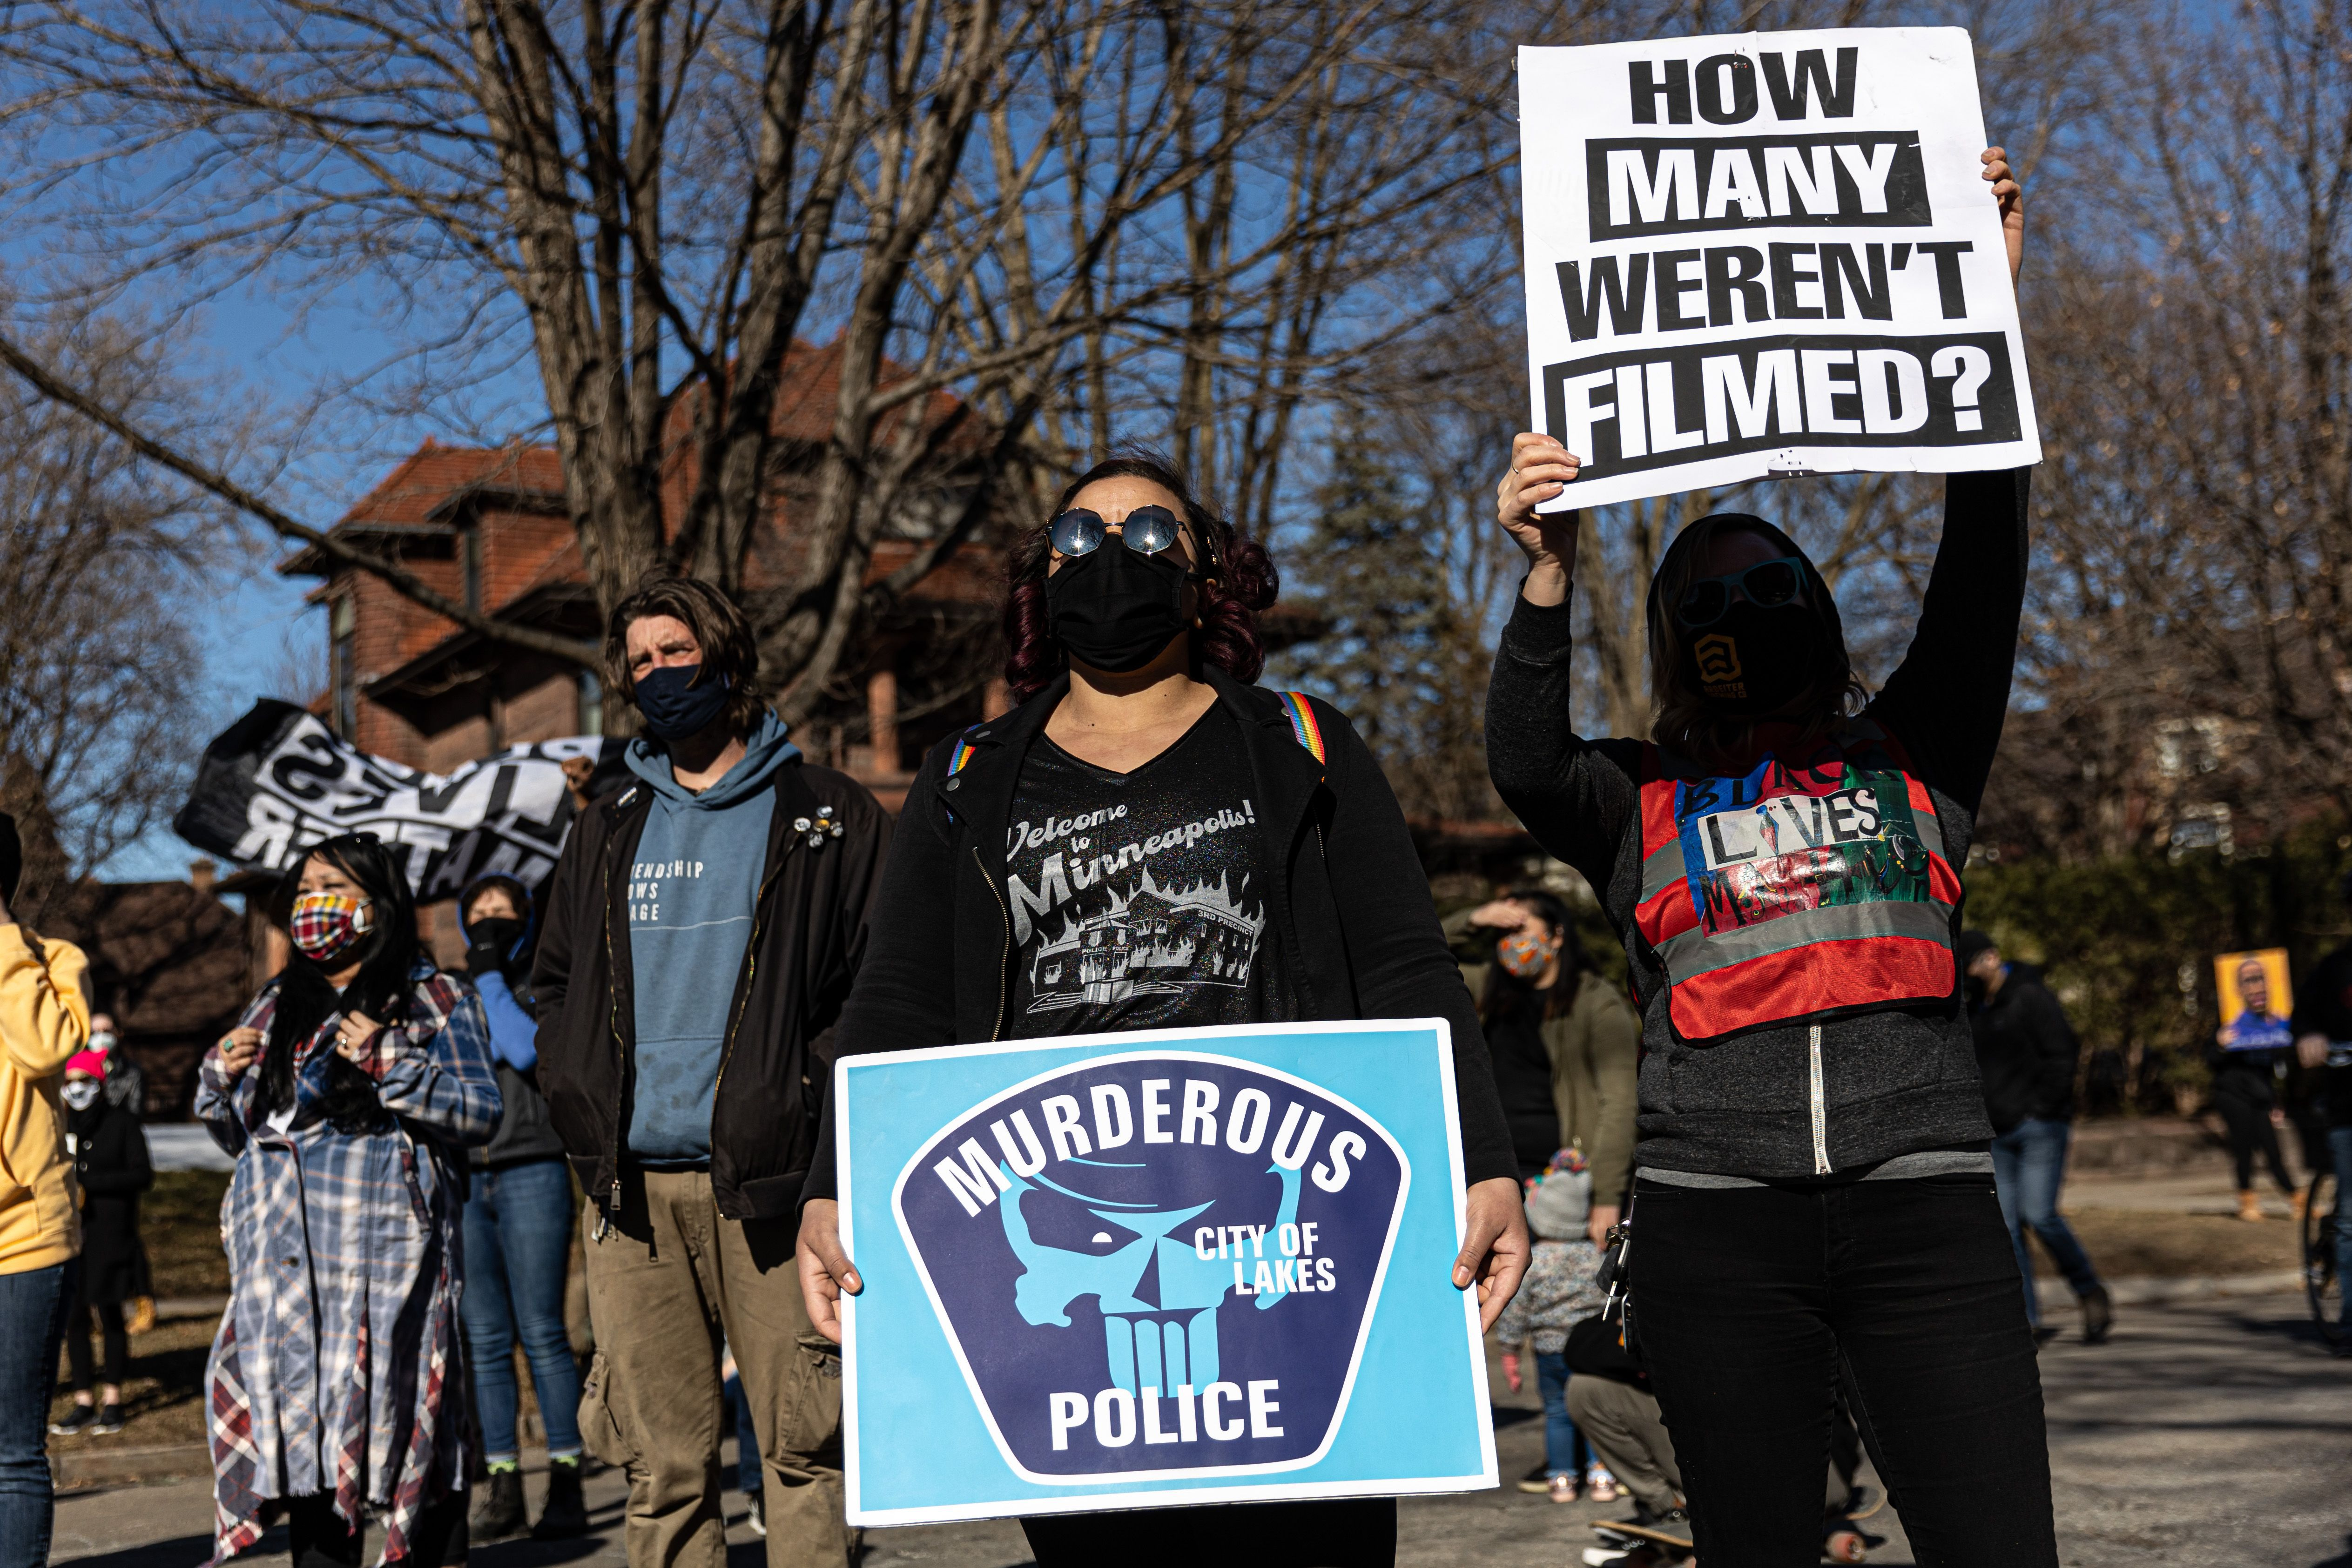 Demonstrators march while holding placards during the protest for George Floyd in St.Paul, Minnesota, on March 6